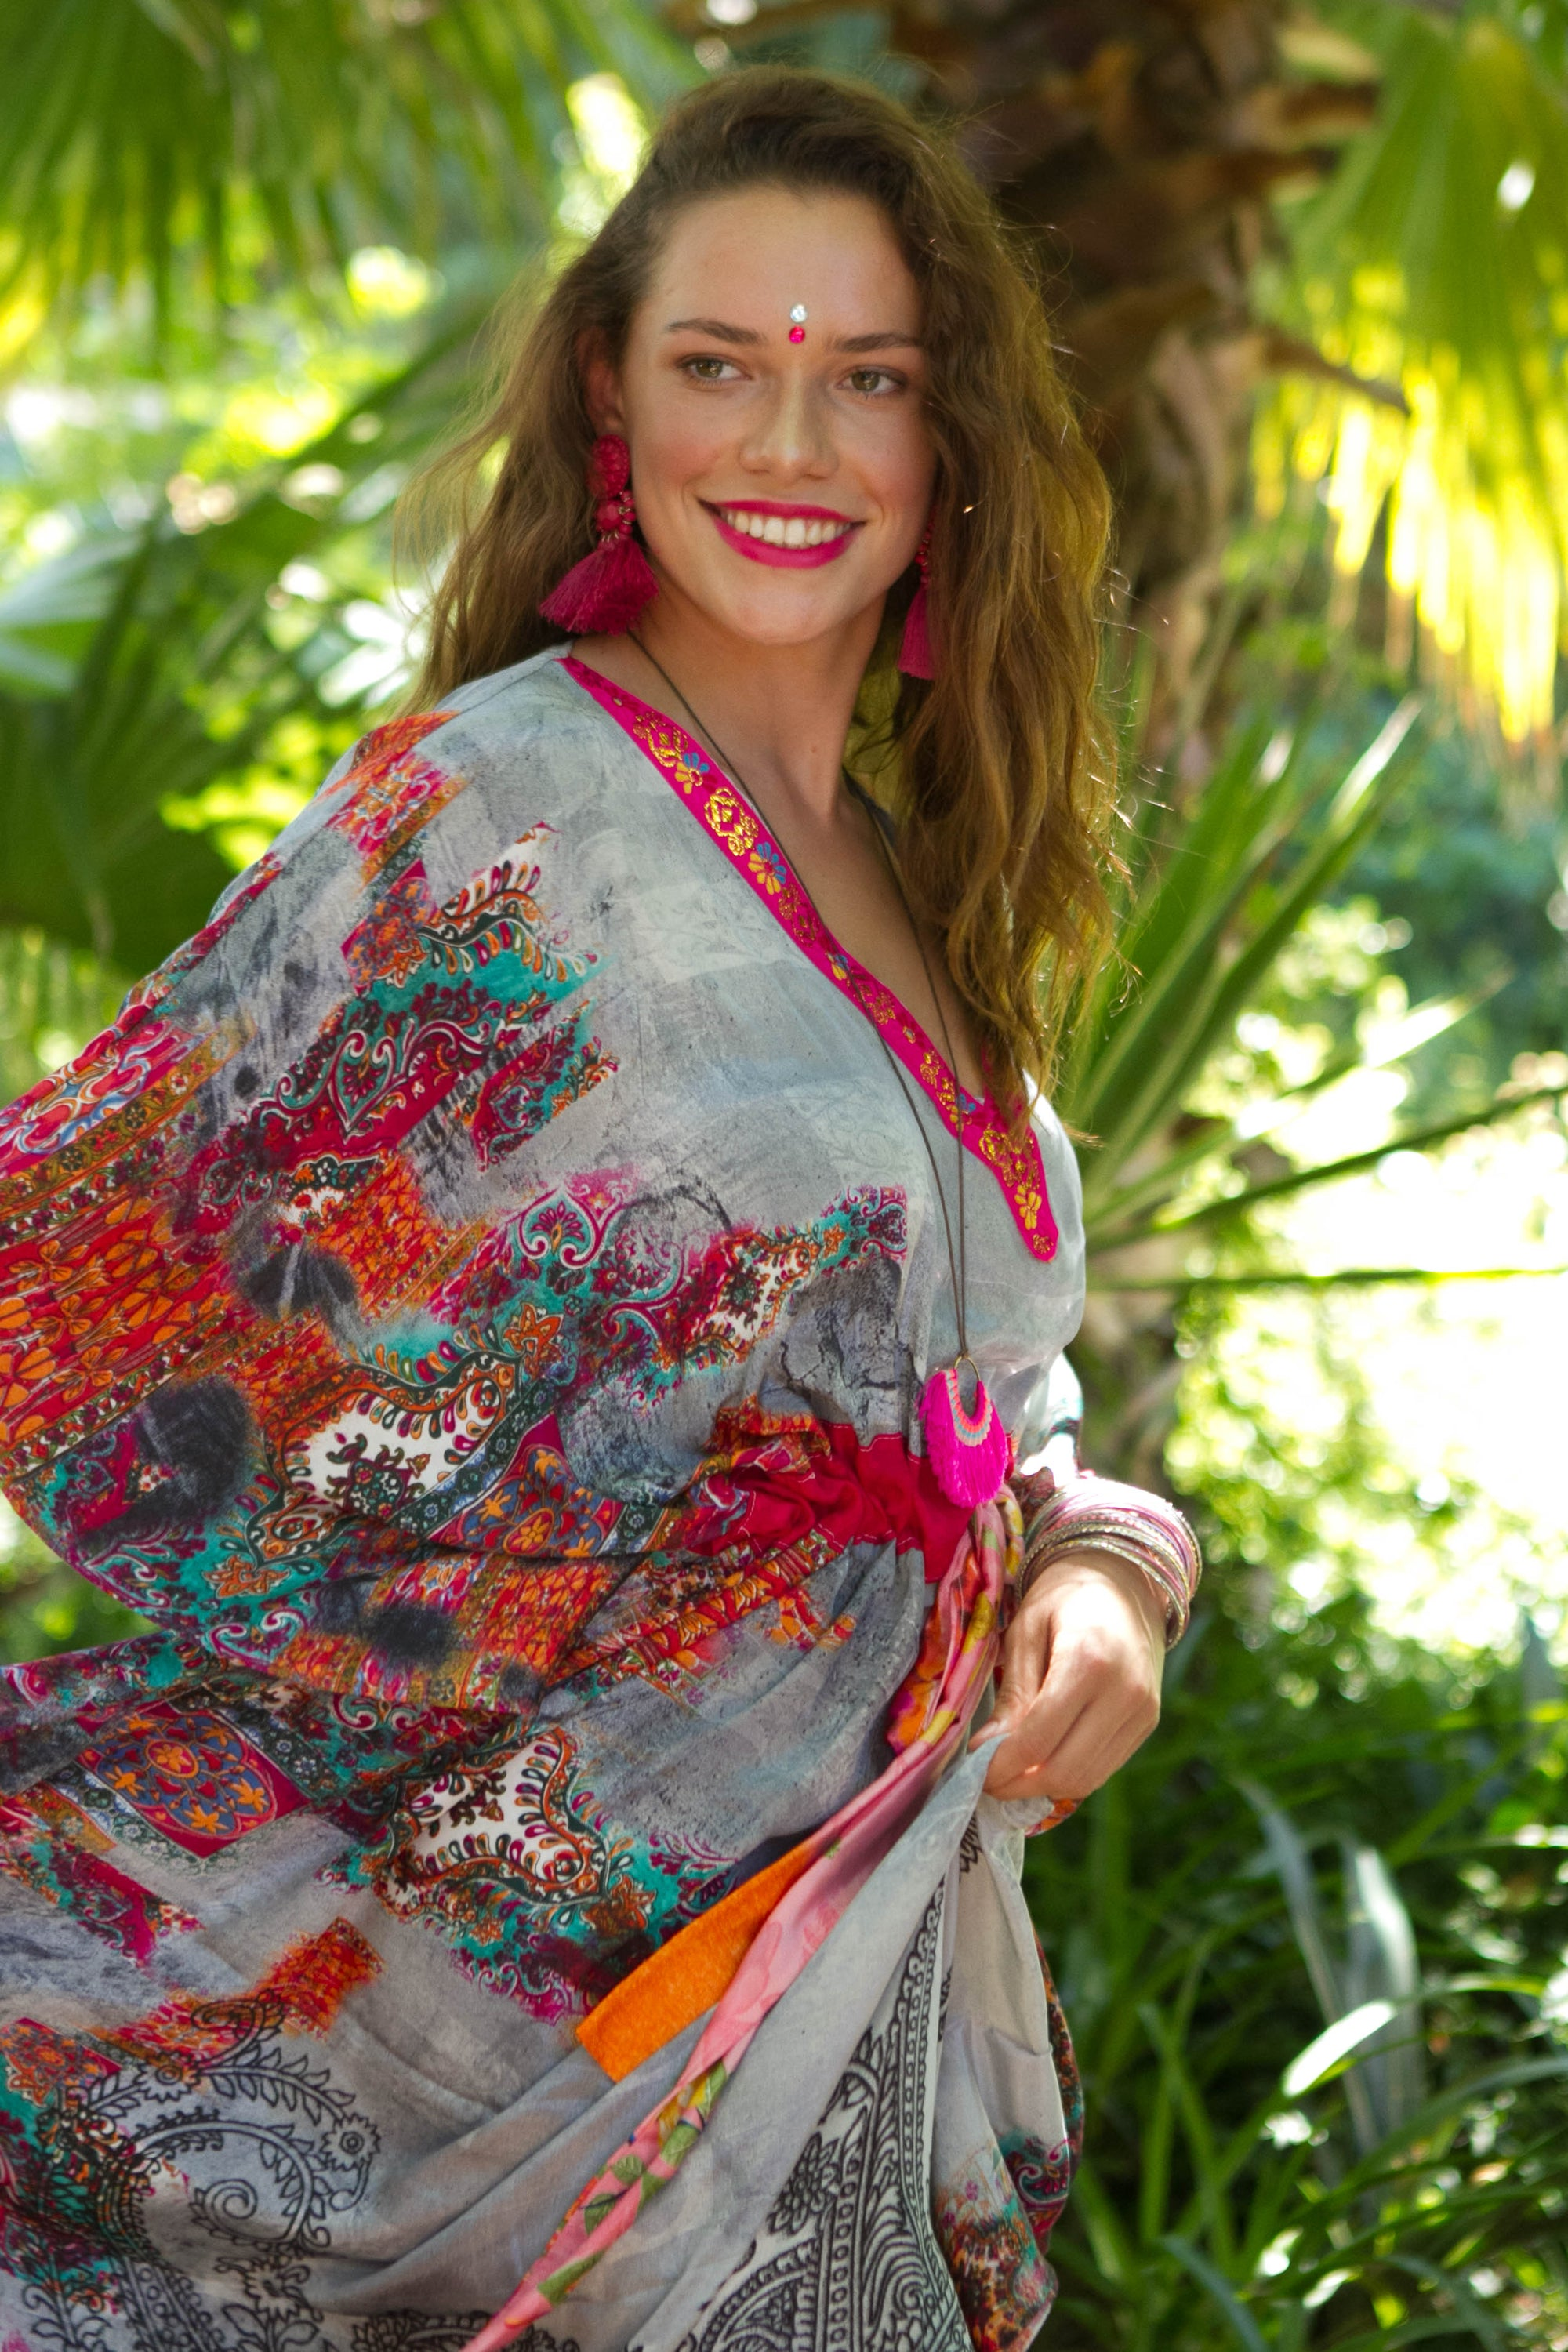 The Gypsy Long Bespoke Kaftan